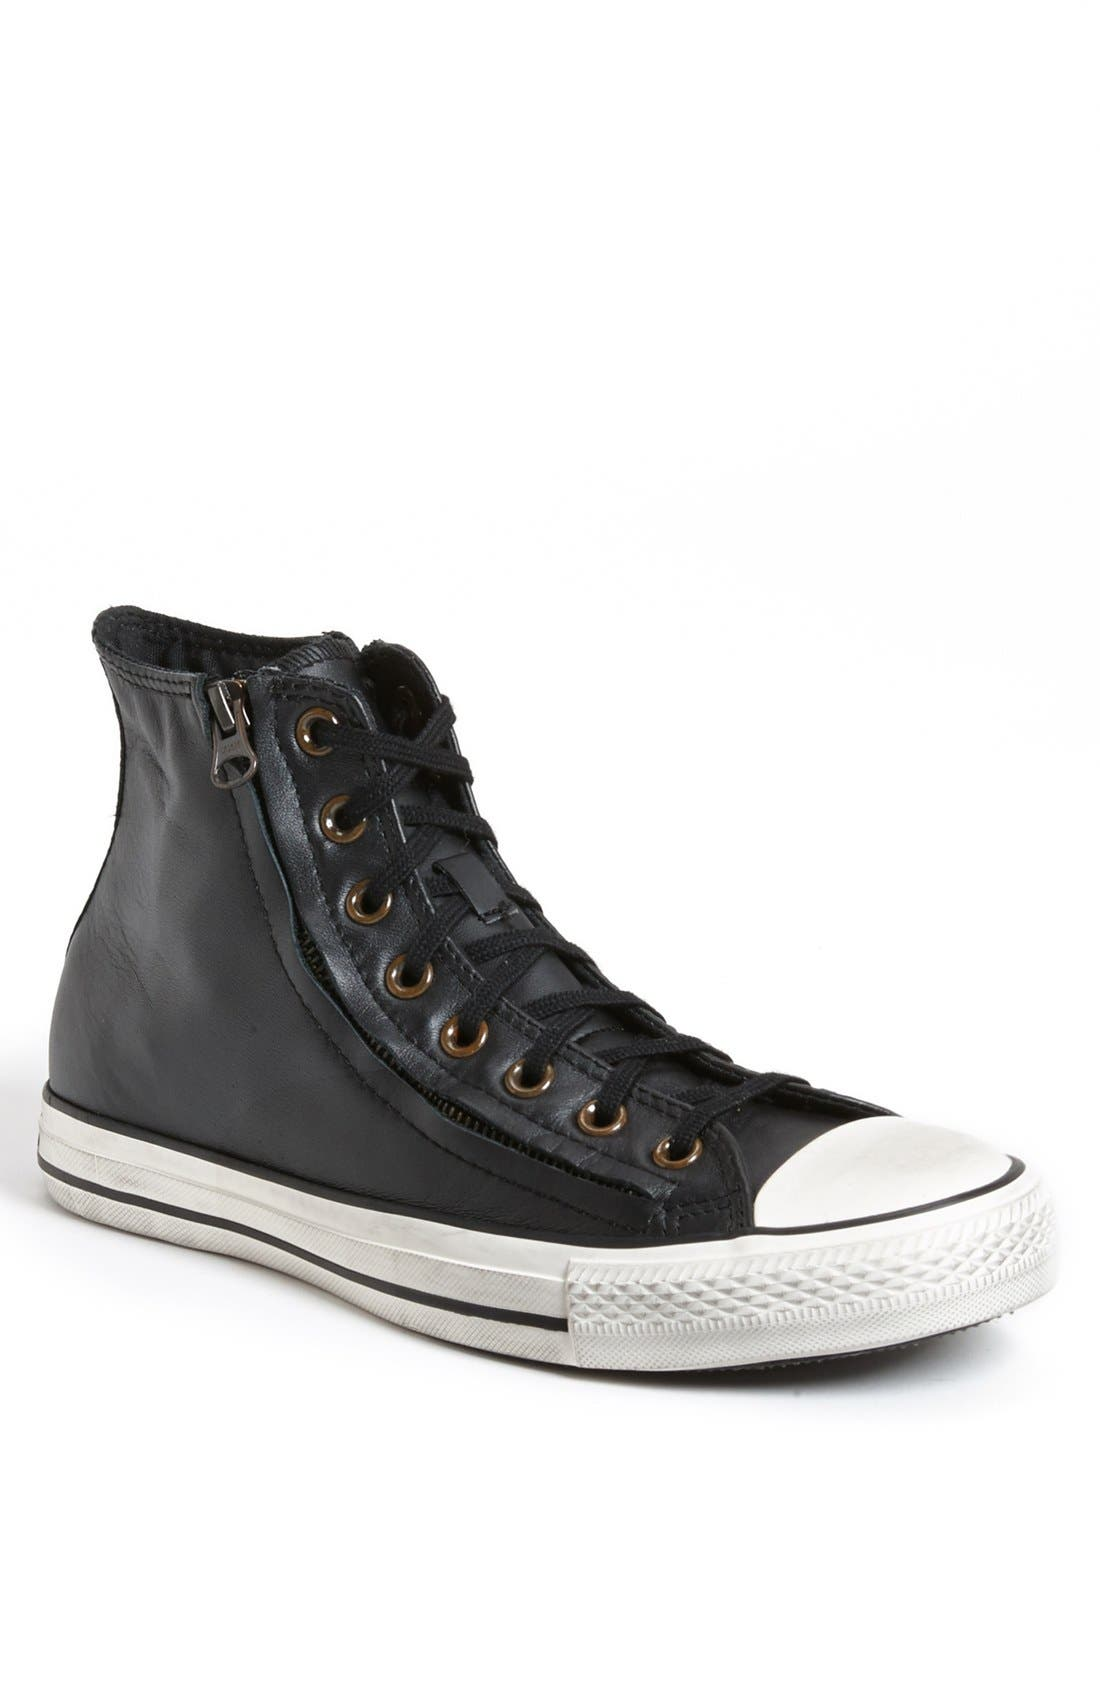 Alternate Image 1 Selected - Converse Chuck Taylor® All Star® Zip Sneaker (Men)